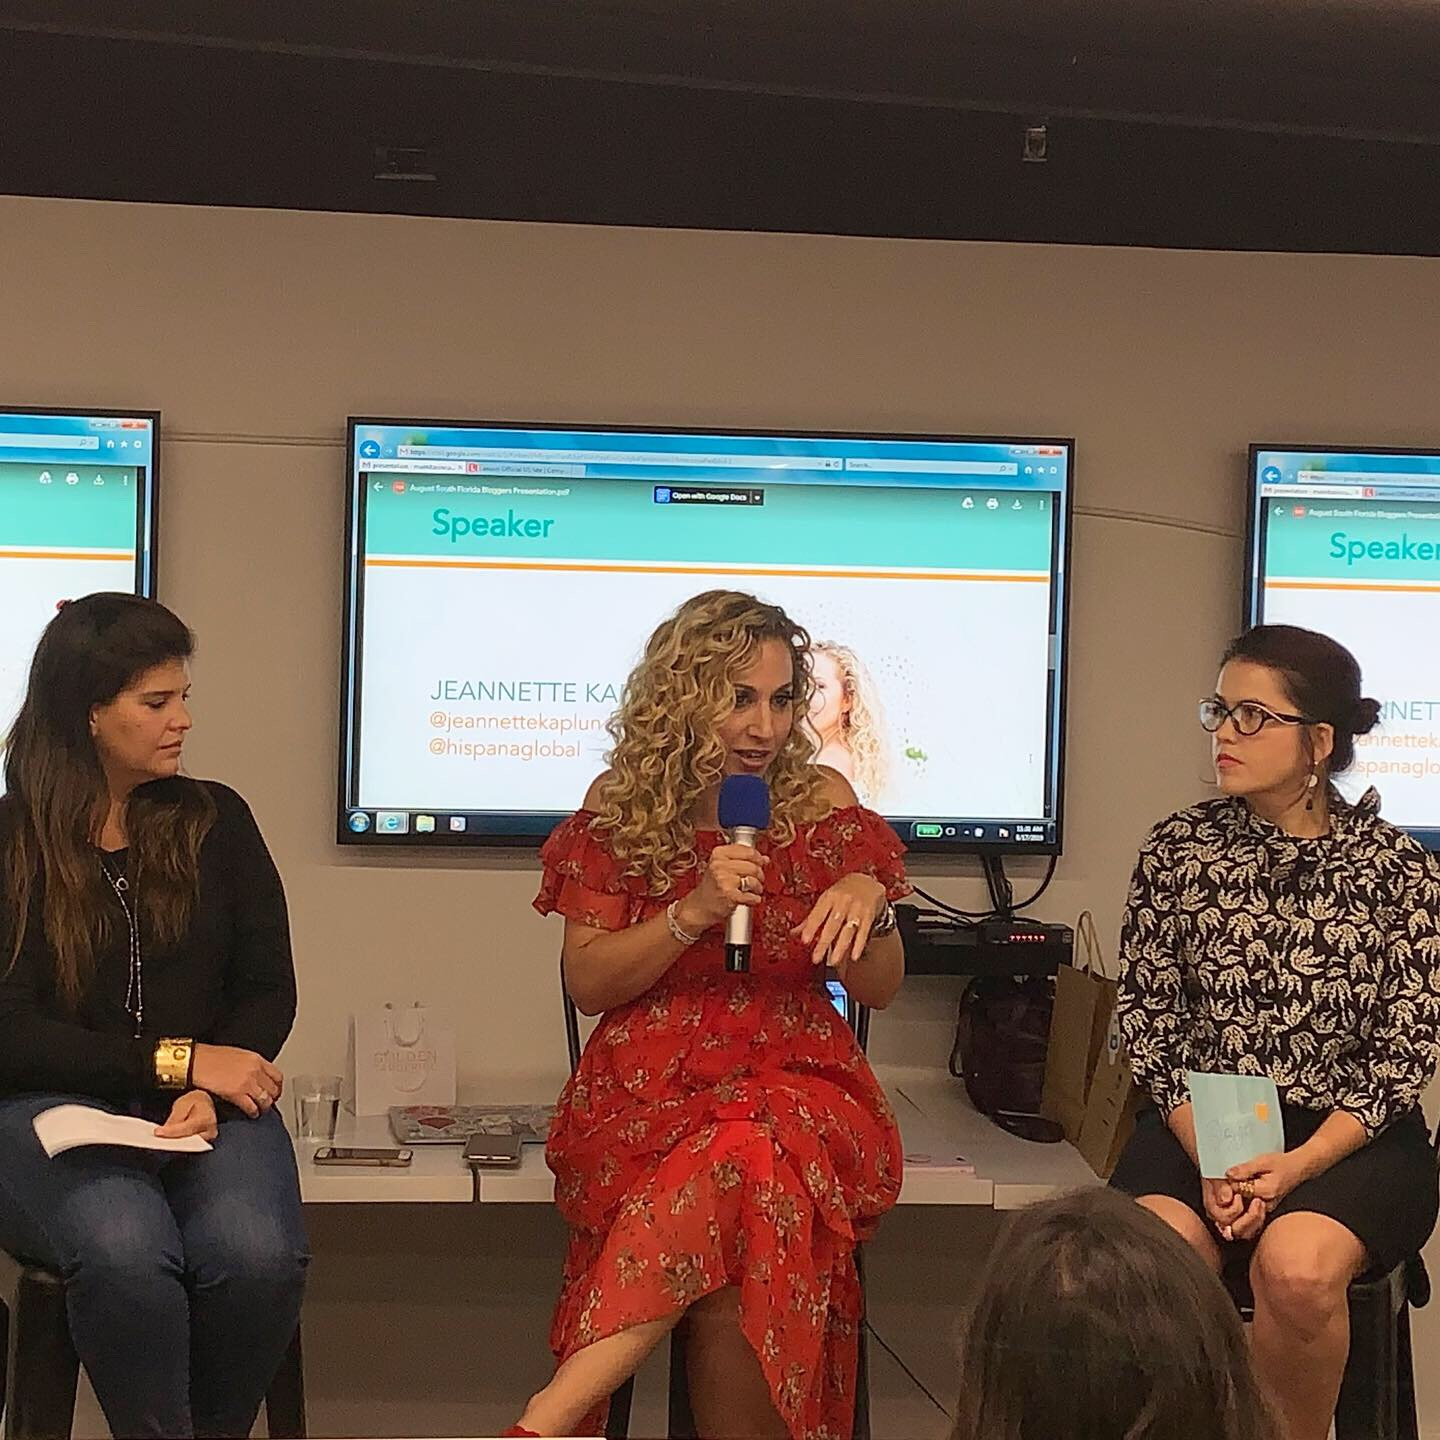 Maria Maiello (Chapter Officer), Jeannette Kaplun (Speaker), and Amaranta Martinez (Chapter Officer) talk to the South Florida Mom Bloggers about connecting through storytelling at this meetup.